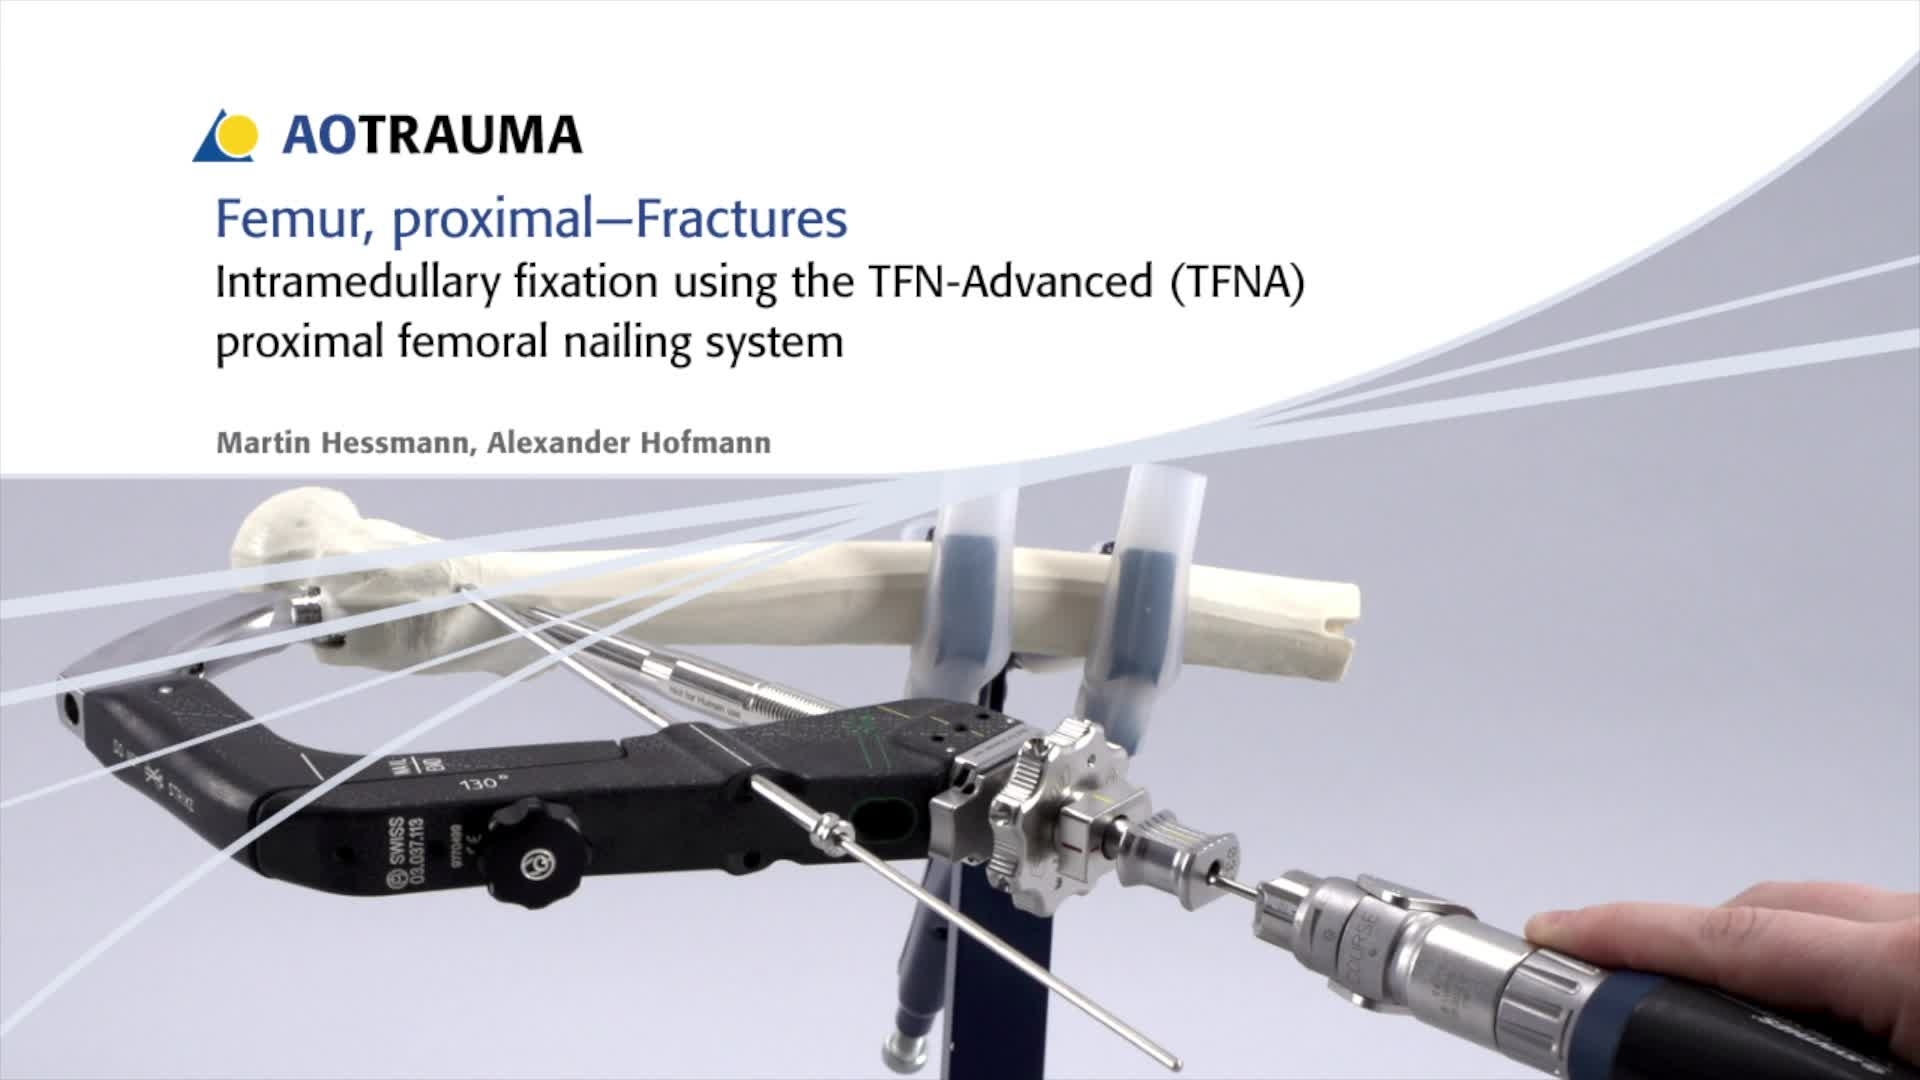 ... for the intramedullary fixation of a proximal femoral fracture will be demonstrated using the TFN-Advanced Proximal Femoral Nailing System (or TFNA).